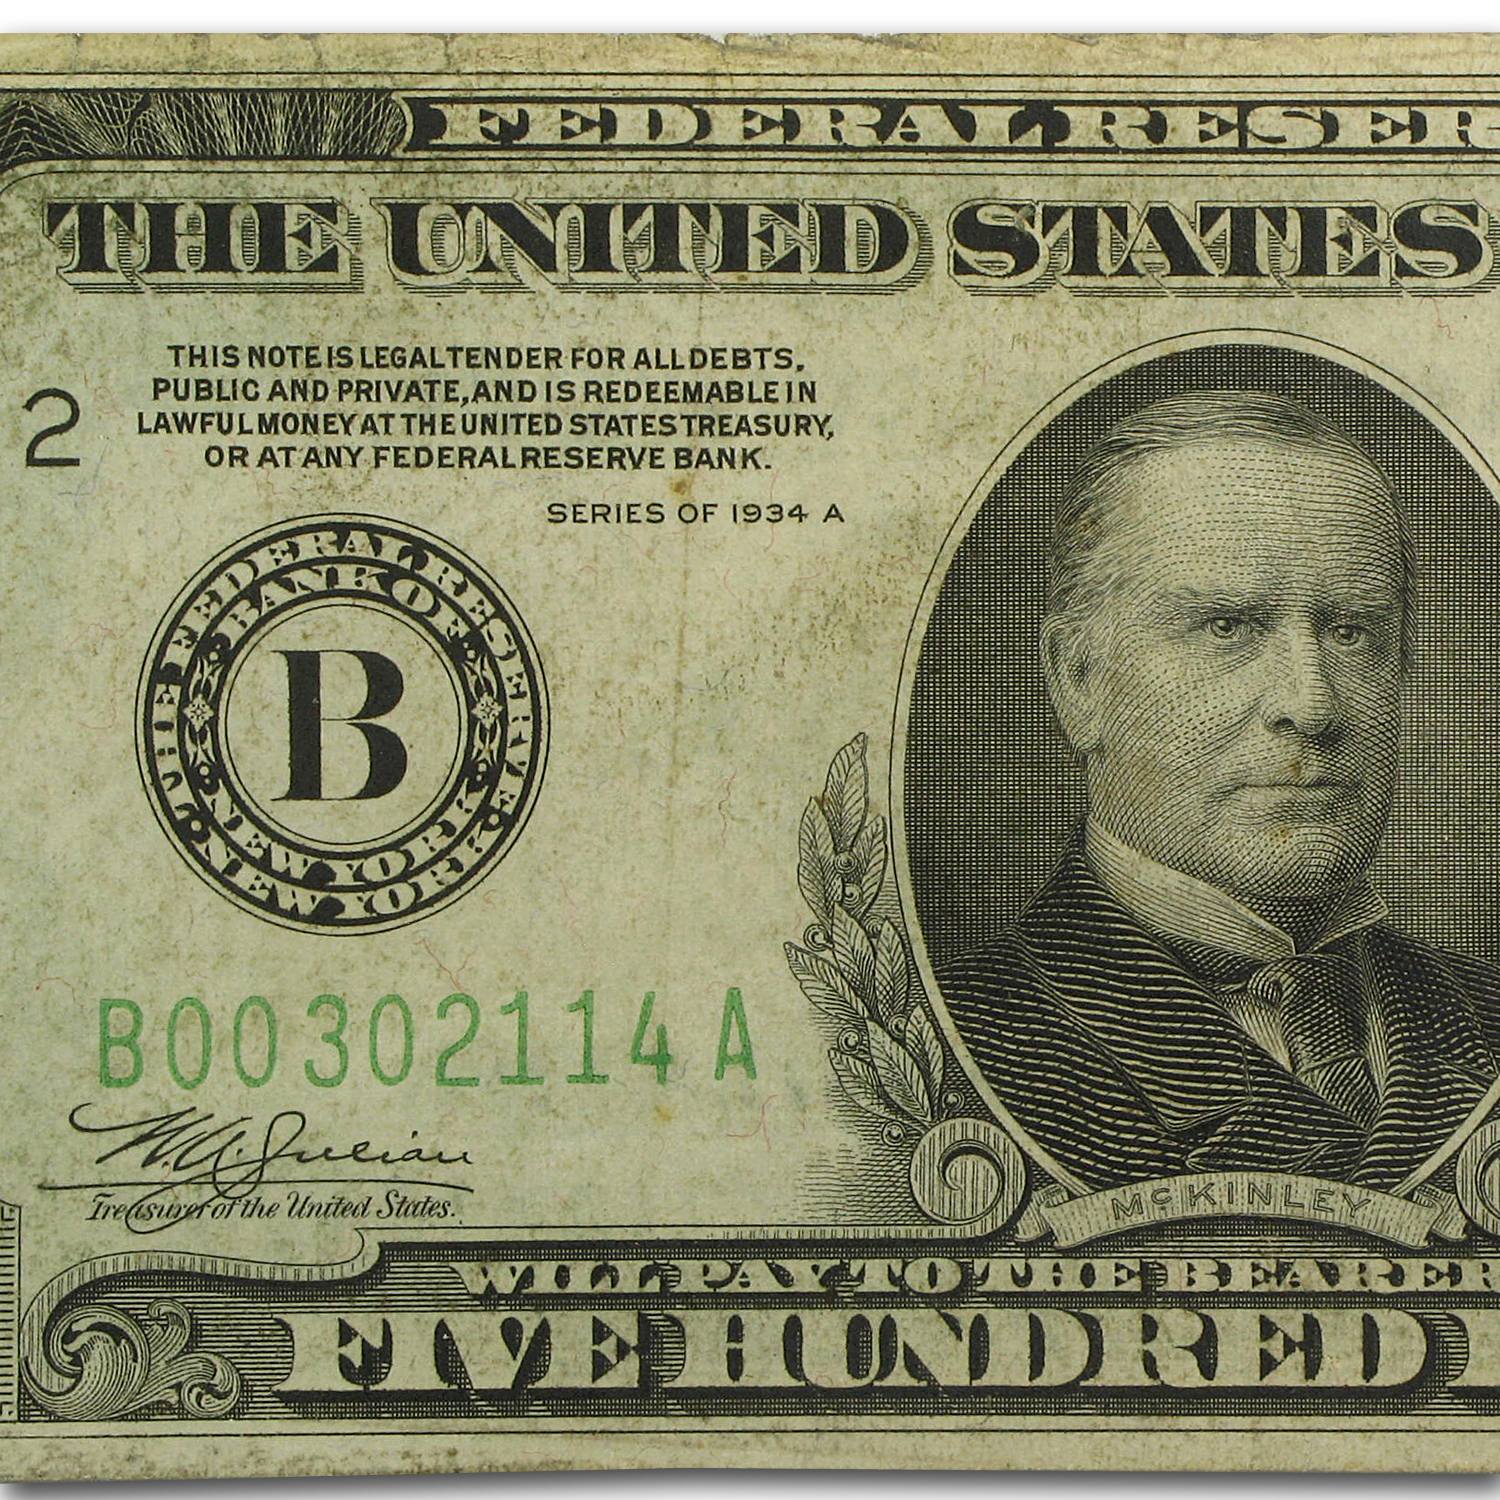 1934-A (B-New York) $500 FRN (Very Fine + )